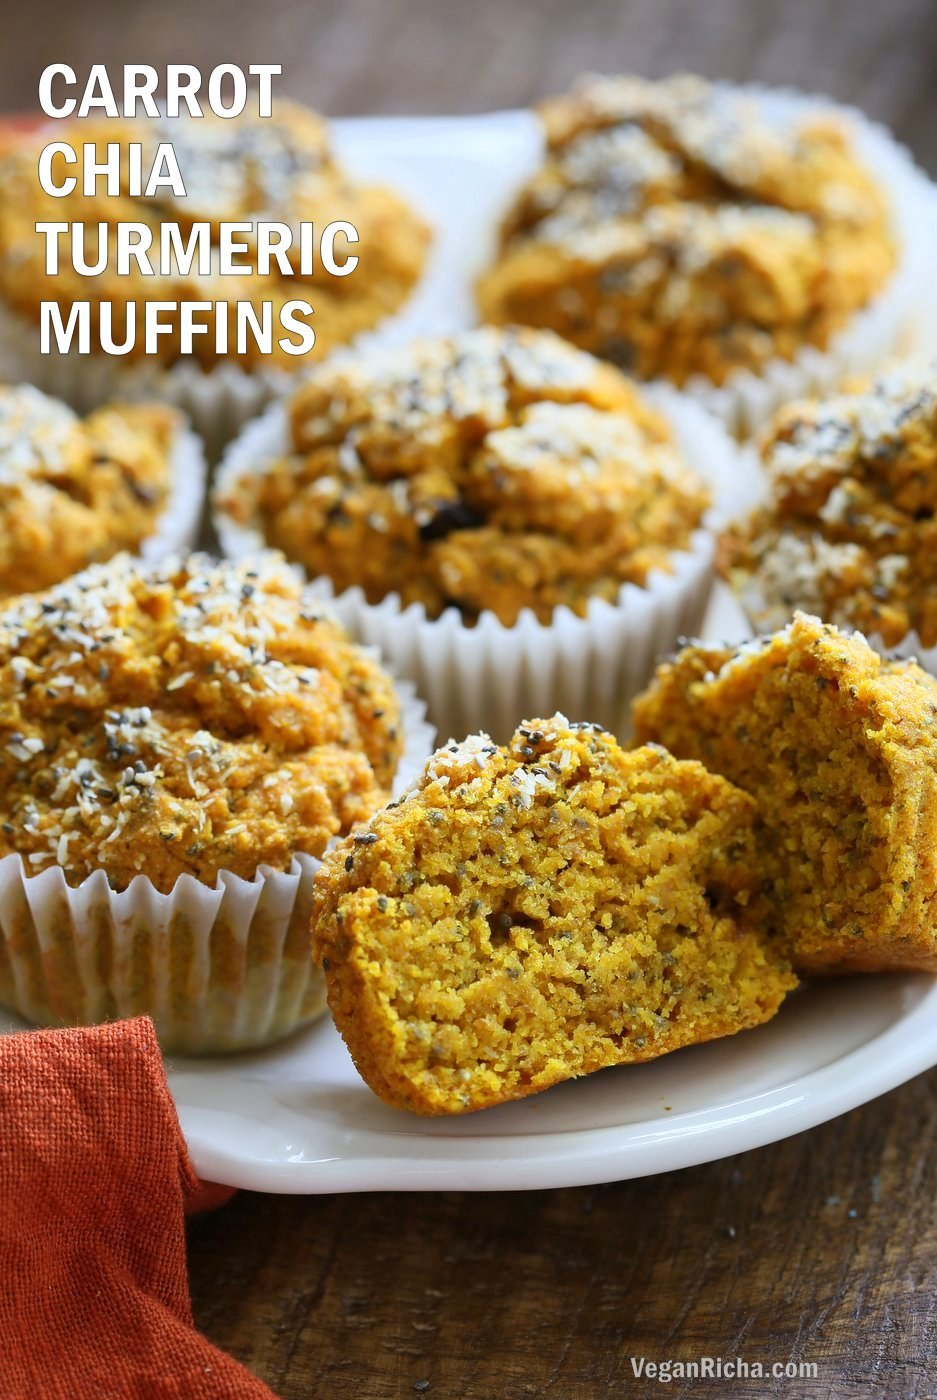 Turmeric Carrot Muffins. These sunshine muffins have carrots, dry or fresh turmeric, fresh ginger and chia seeds. Coconut rounds up the flavor for a caramelized carrot ginger turmeric profile. Add nuts or dried fruit of choice to these Turmeric muffins. No added sugar or oil needed. Vegan Soyfree Nut-free Recipe | VeganRicha.com